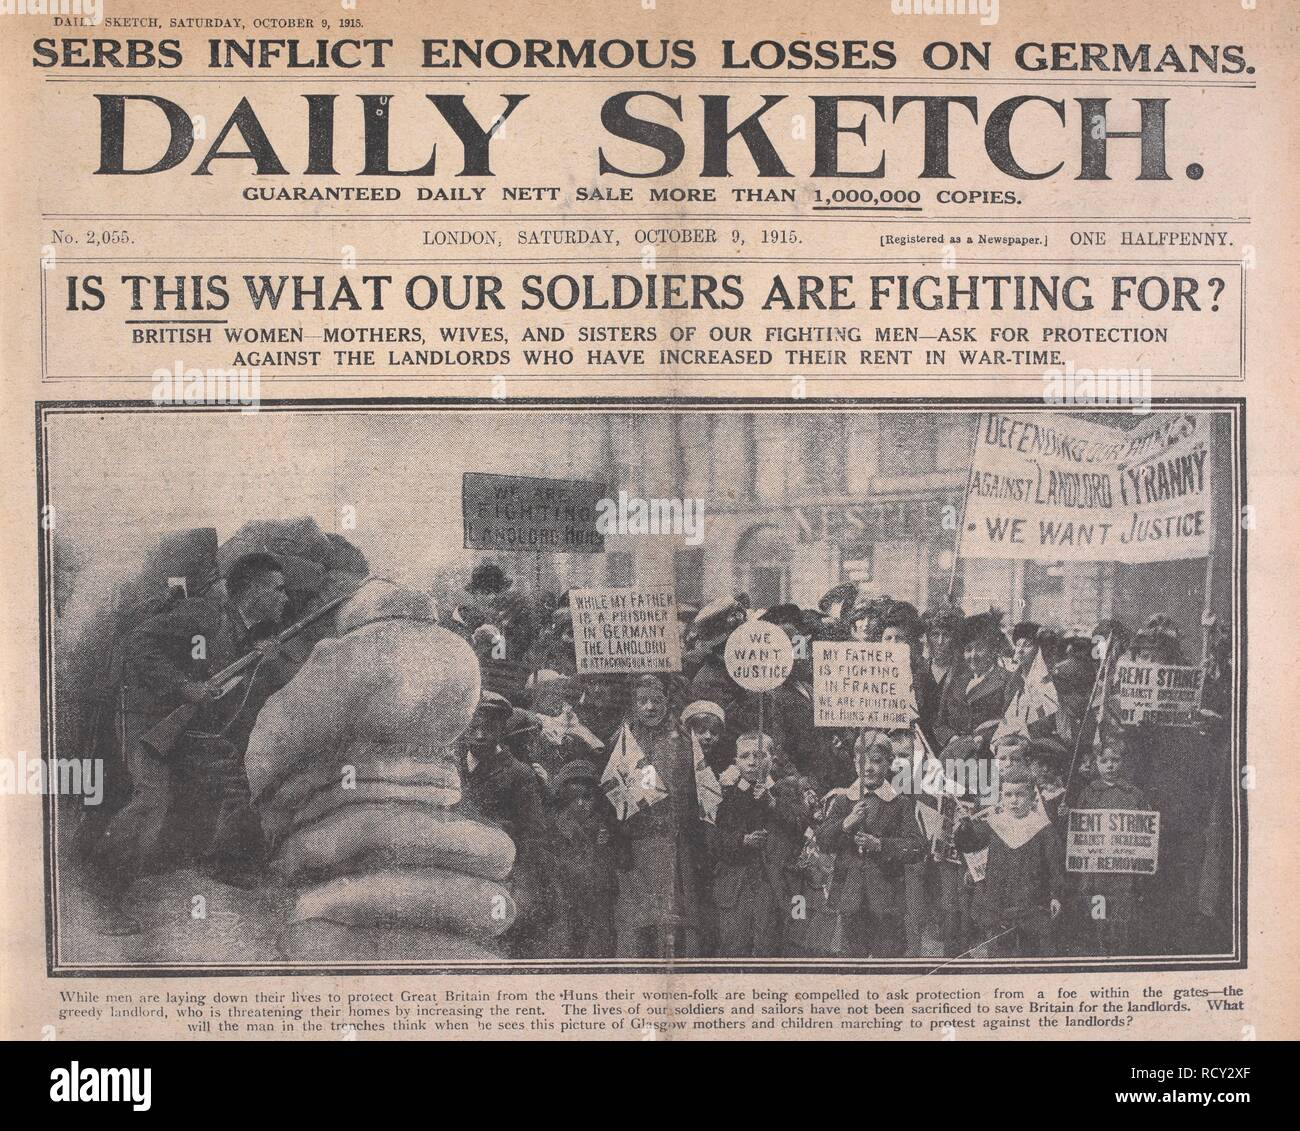 'Is this what our soldiers are fighting for?' British women ... ask for protection against the landlords who have increased their rent in war-time'. This is a picture of mothers and children on a protest march in Glasgow, Scotland. Daily Sketch. London, 1915. Source: Daily Sketch, 9 October 1915. - Stock Image